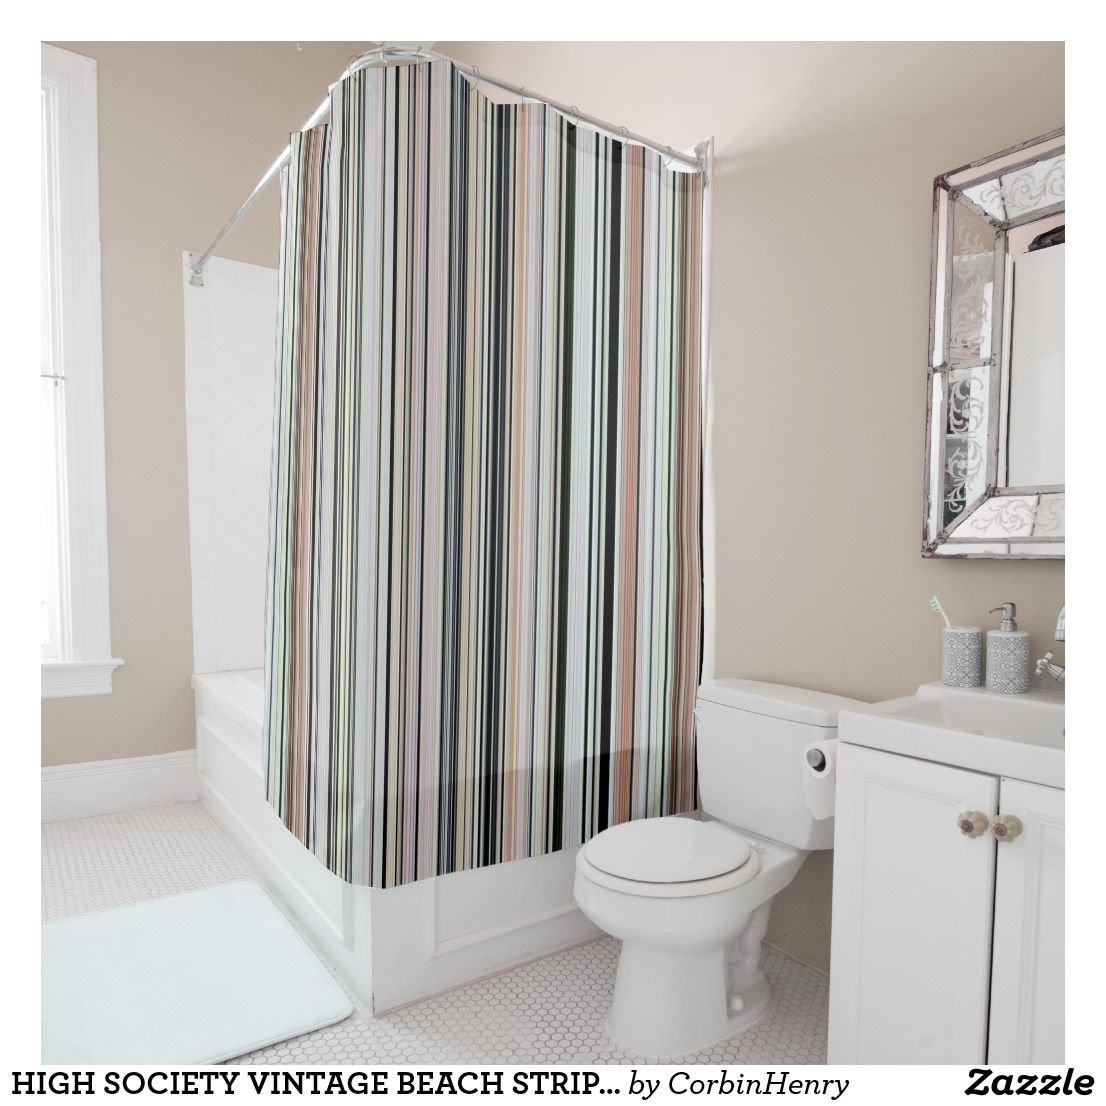 HIGH SOCIETY VINTAGE BEACH STRIPES 002 Shower Curtain Even Though This Has A Vintage Beachy Name Its Also Comfortable In Contemporary Style Setting